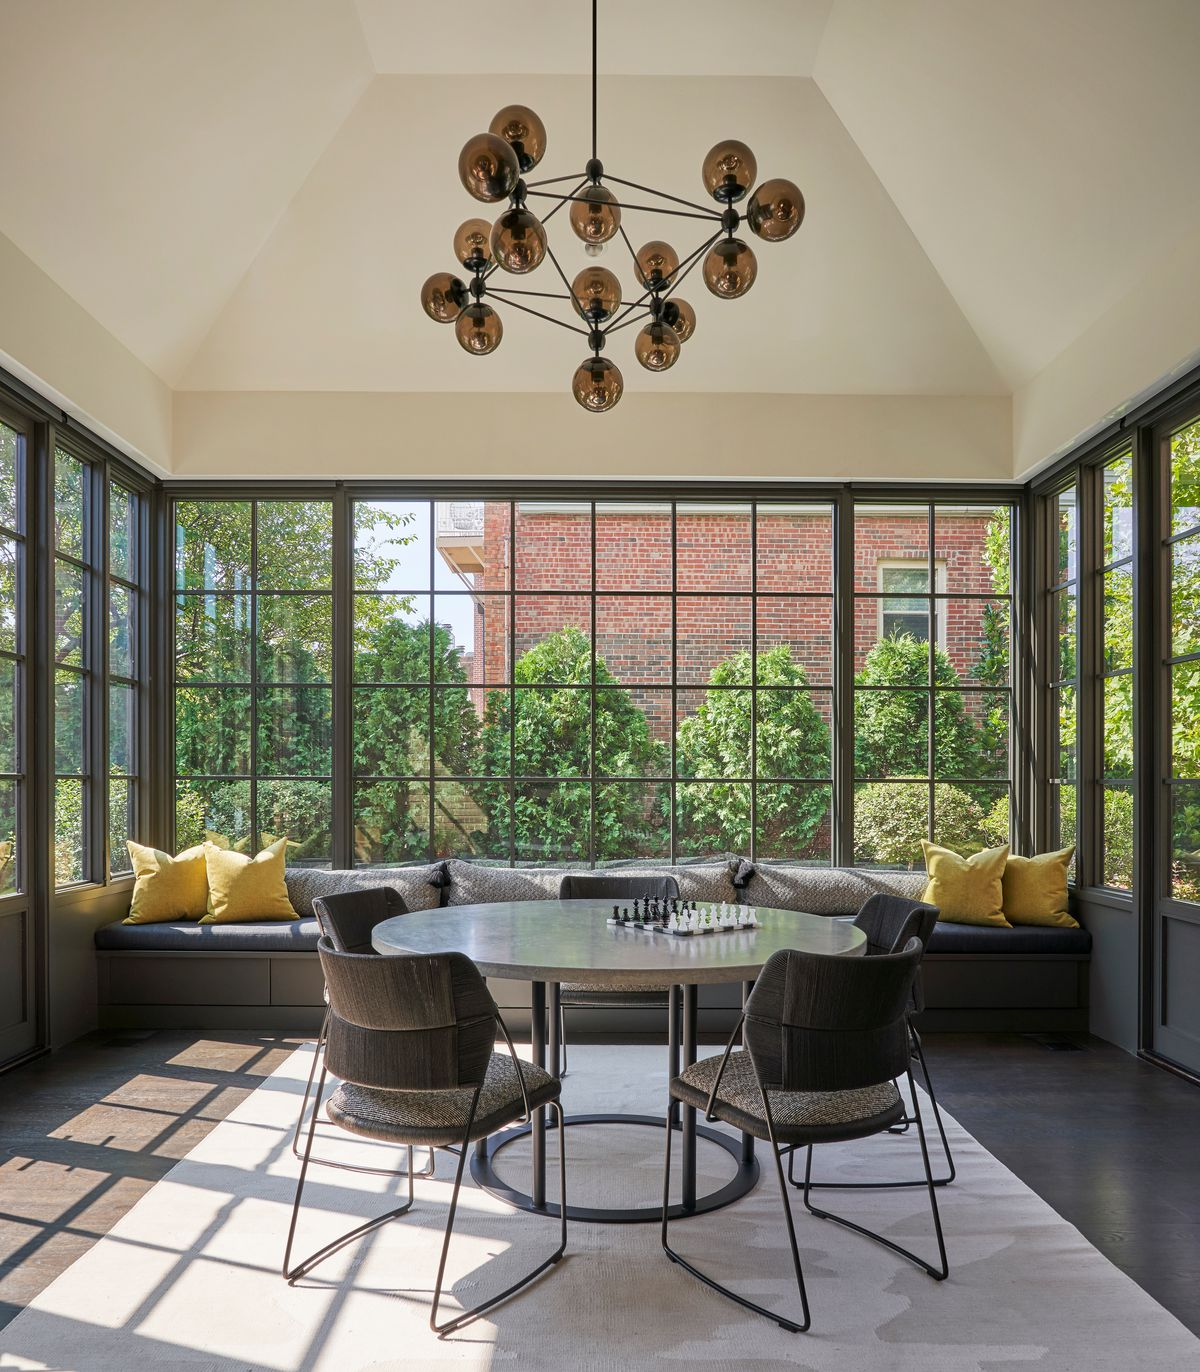 Sunroom with benching seat and a table to play games at.